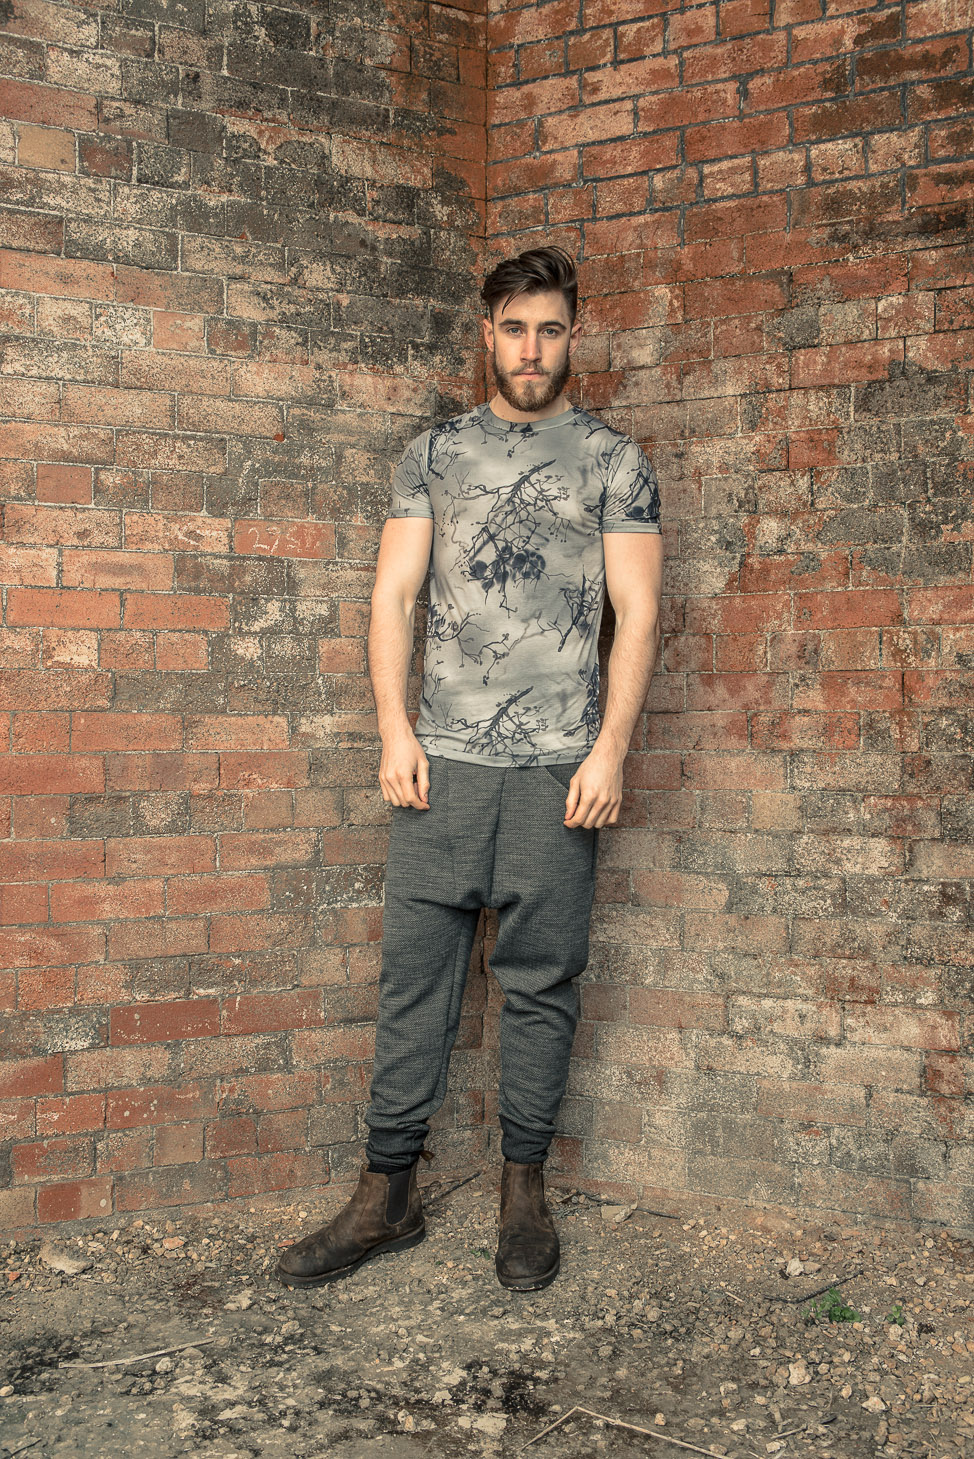 zaramia-ava-zaramiaava-leeds-fashion-designer-ethical-sustainable-tailored-minimalist-fitted-versatile-drape-koji-grey-tshirt-top-hareem-trousers-black-grey-texture-styling-menswear-model-21